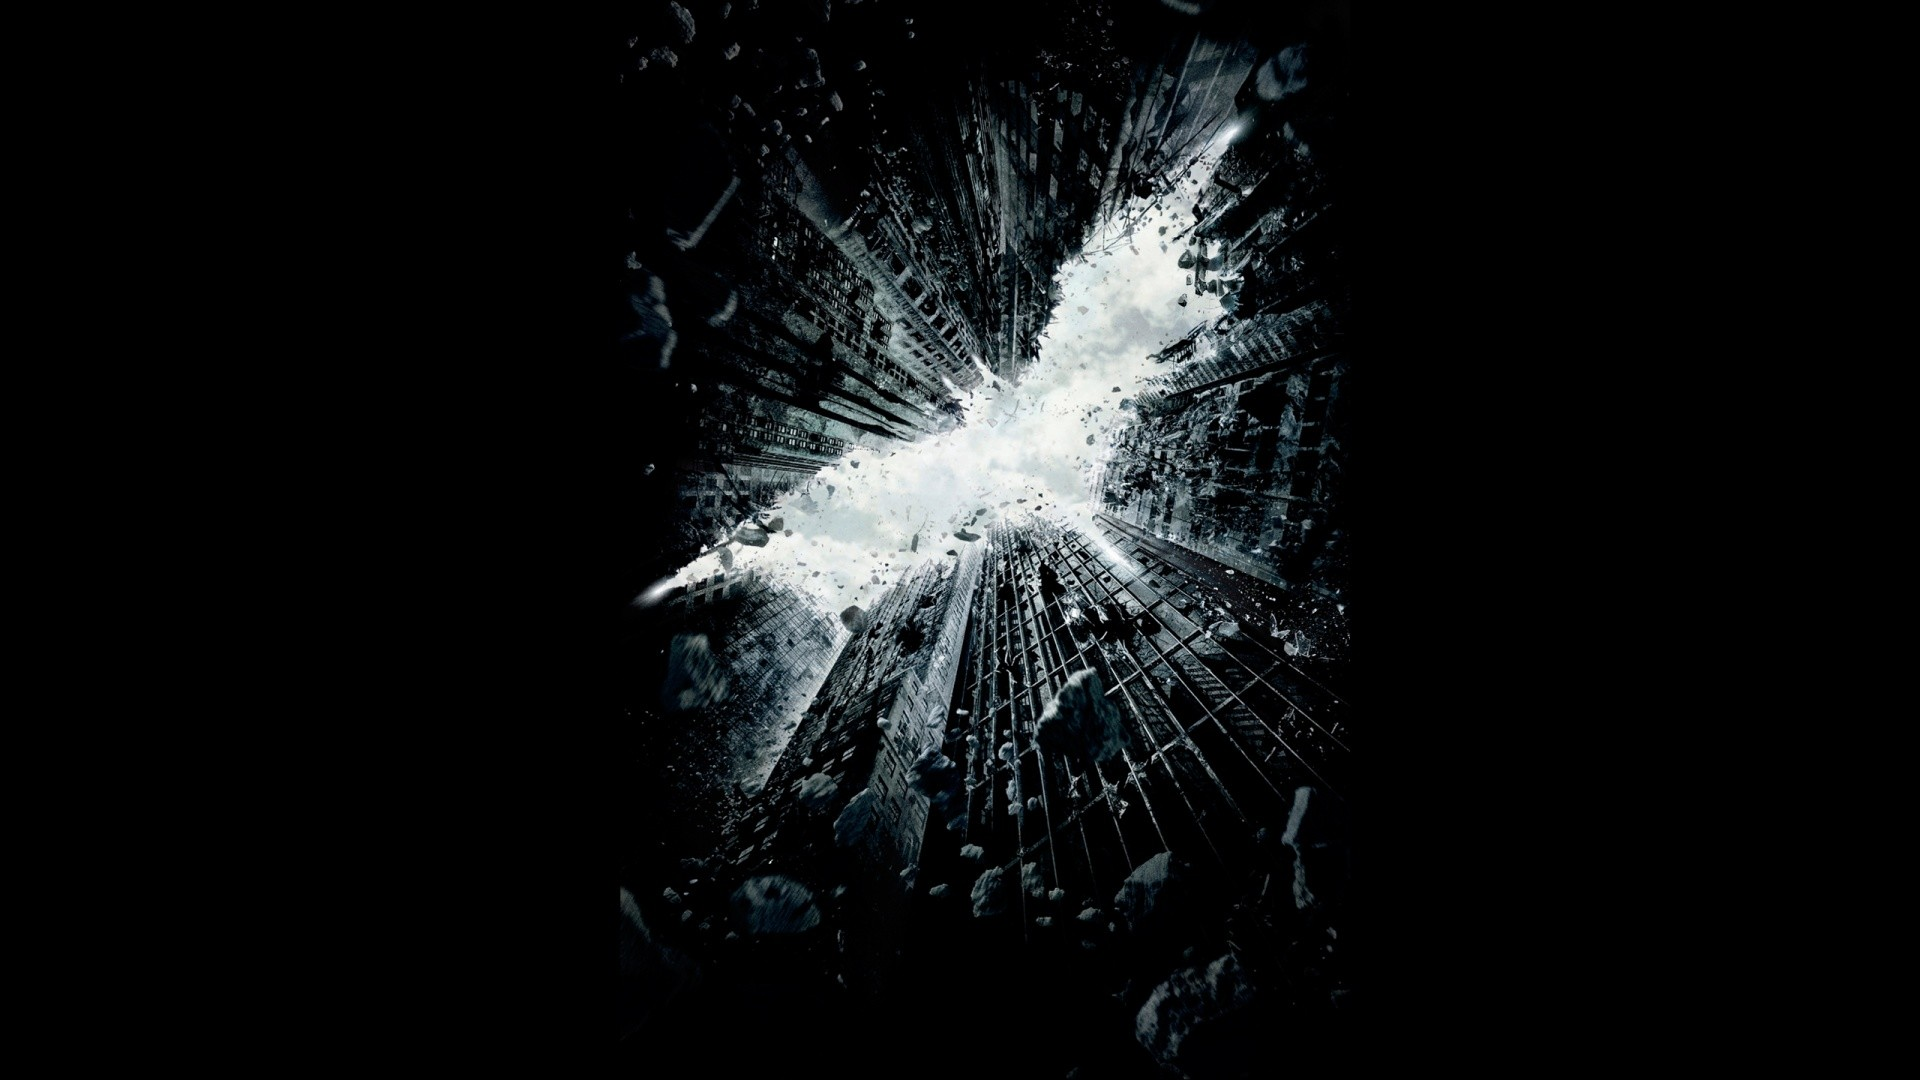 dark knight rises basicwallpaper1920x1080 10 000 fonds